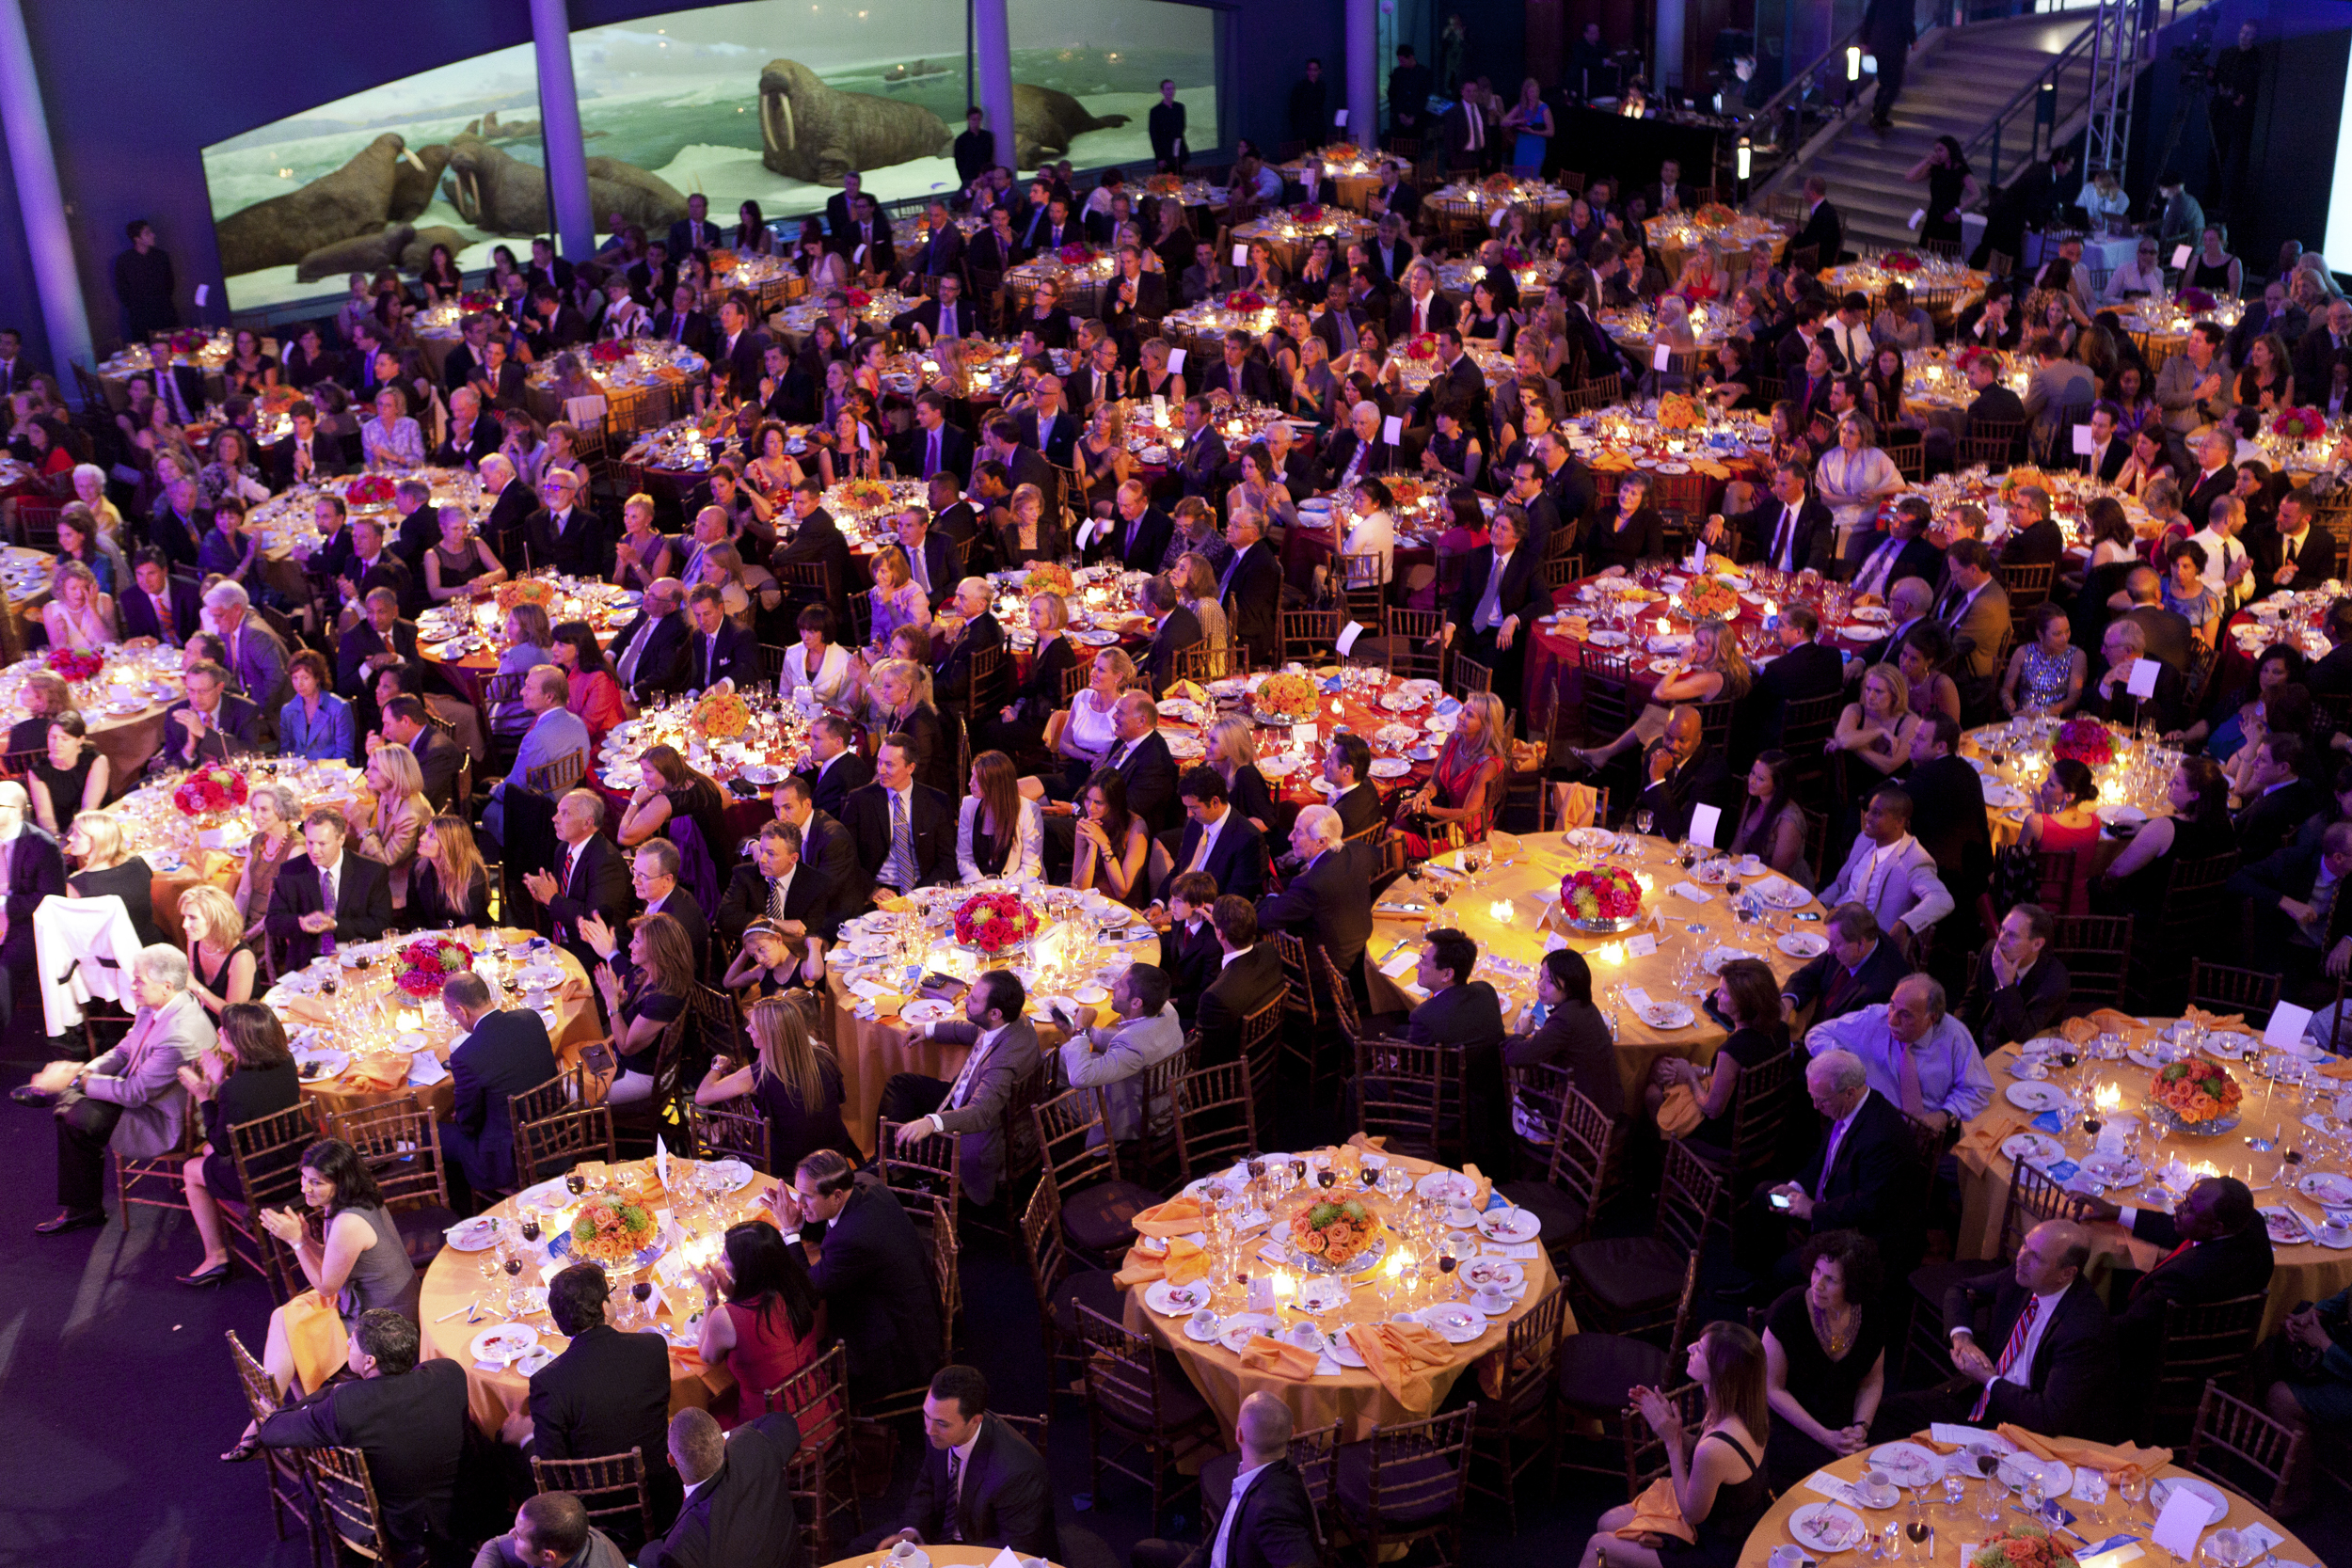 ceci-new-york-gives-back-boys-and-girls-club-of-america-great-futures-gala-2011-invitations-party-decor-museum-of-natural-history-event--14.jpg